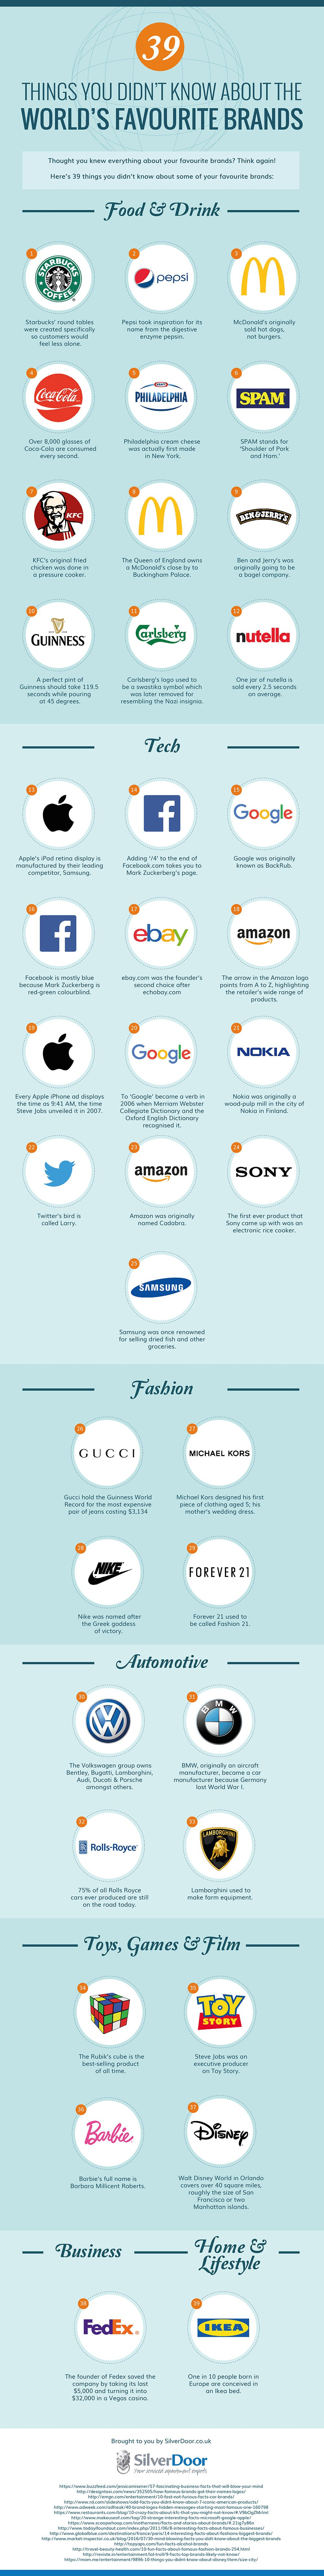 39 Things You Didn't Know About The World's Favourite Brands #Infographic